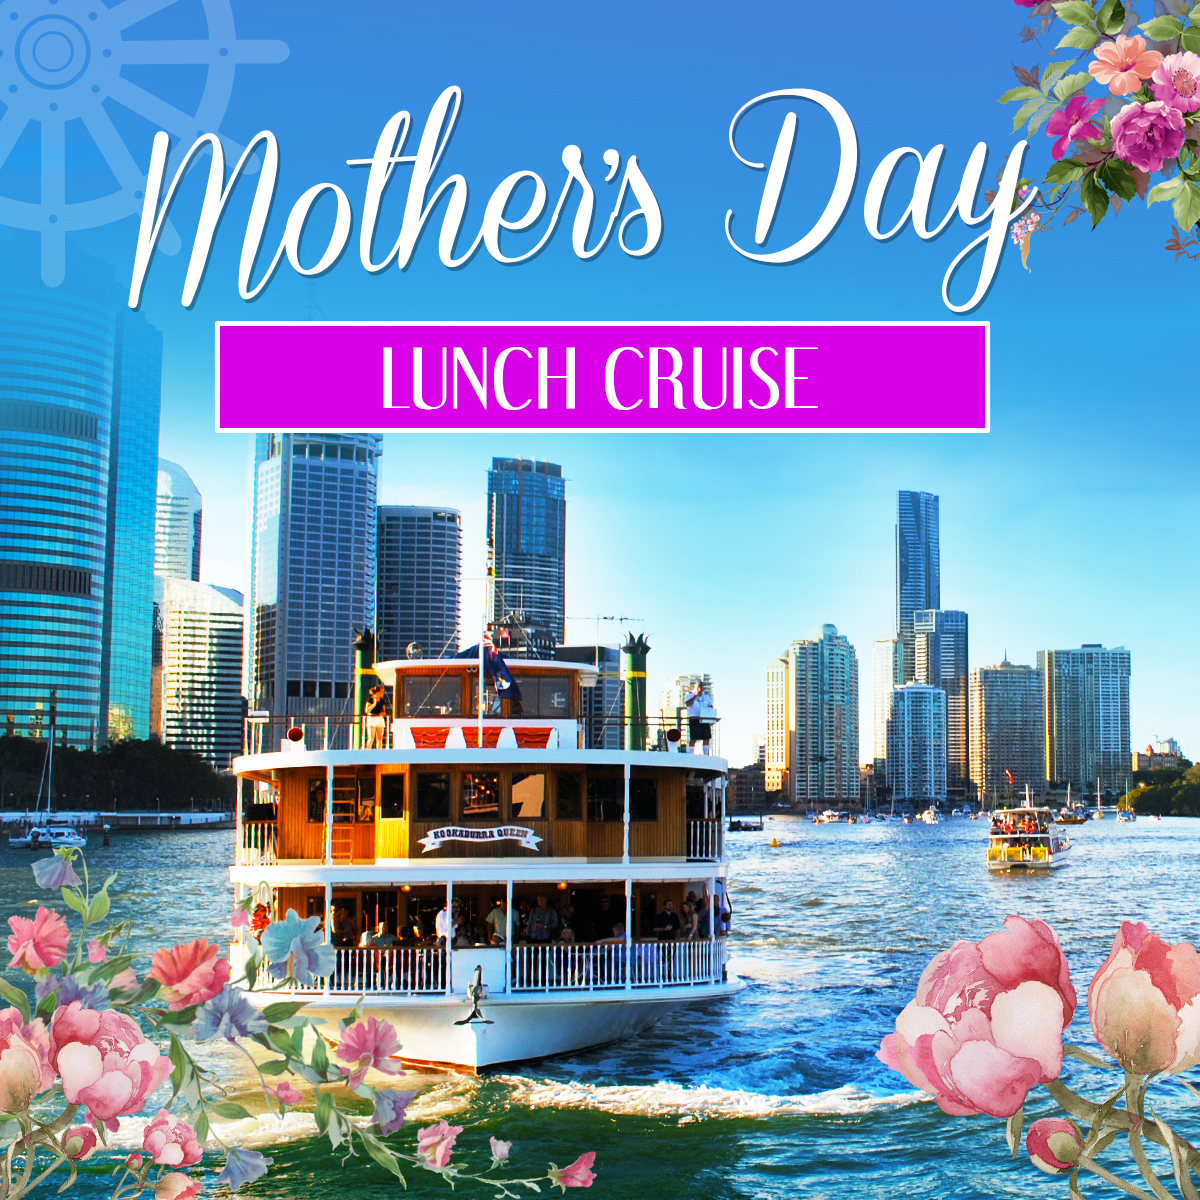 Mothers Day Lunch Cruise on Kookaburra Queen I